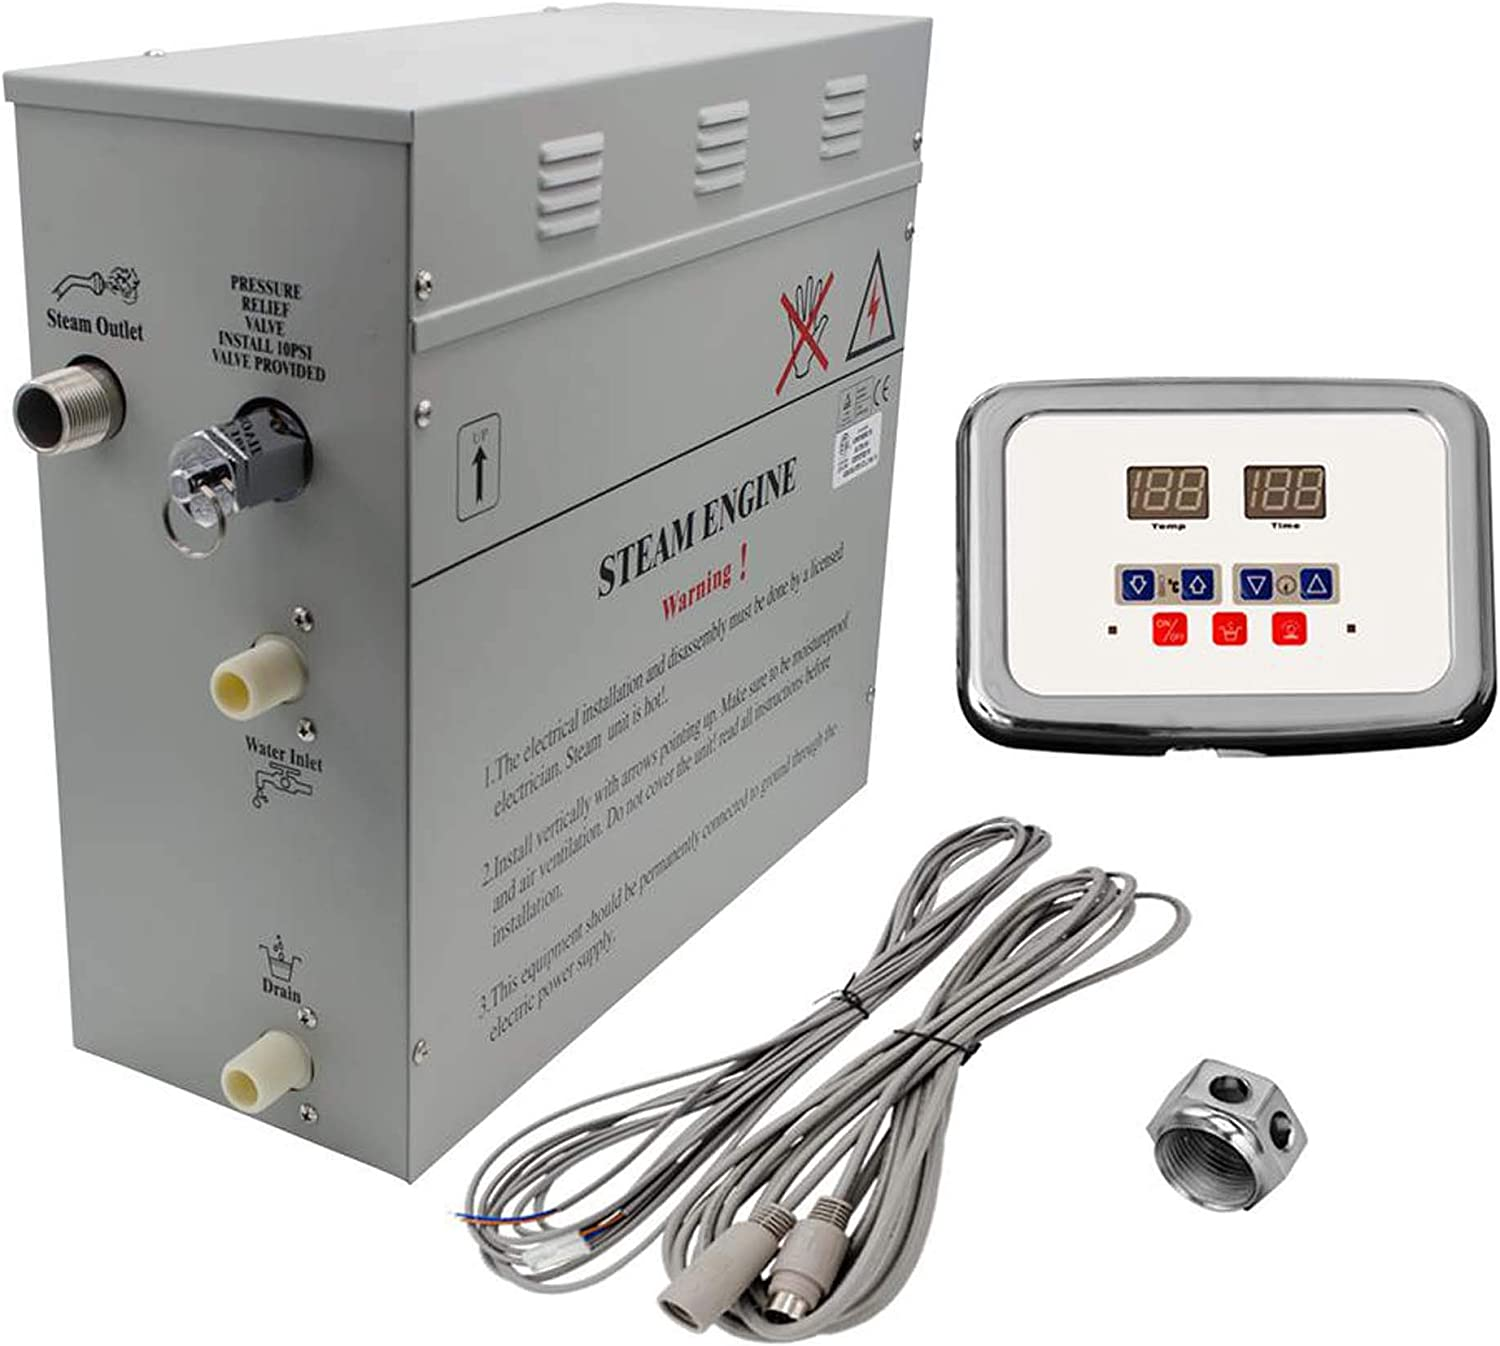 Amazon Com Superior 6kw Self Draining Steam Bath Generator With Waterproof Programmable Controls And Chrome Steam Outlet Home Improvement